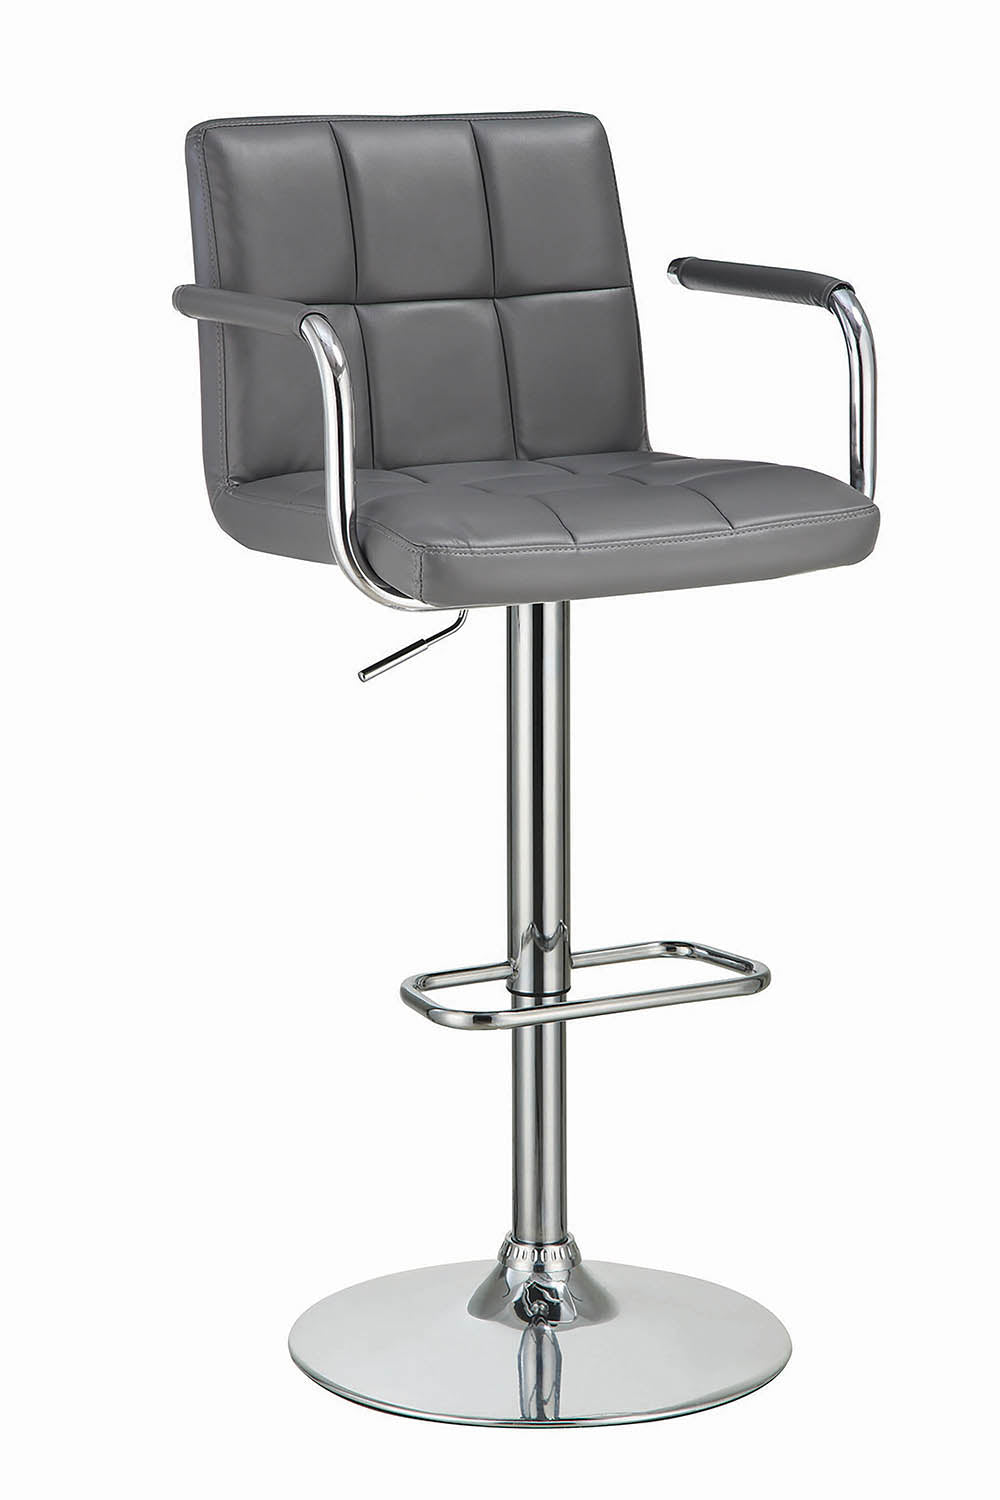 Coaster Adjustable Grey Vinyl Chrome Base Bar Stool